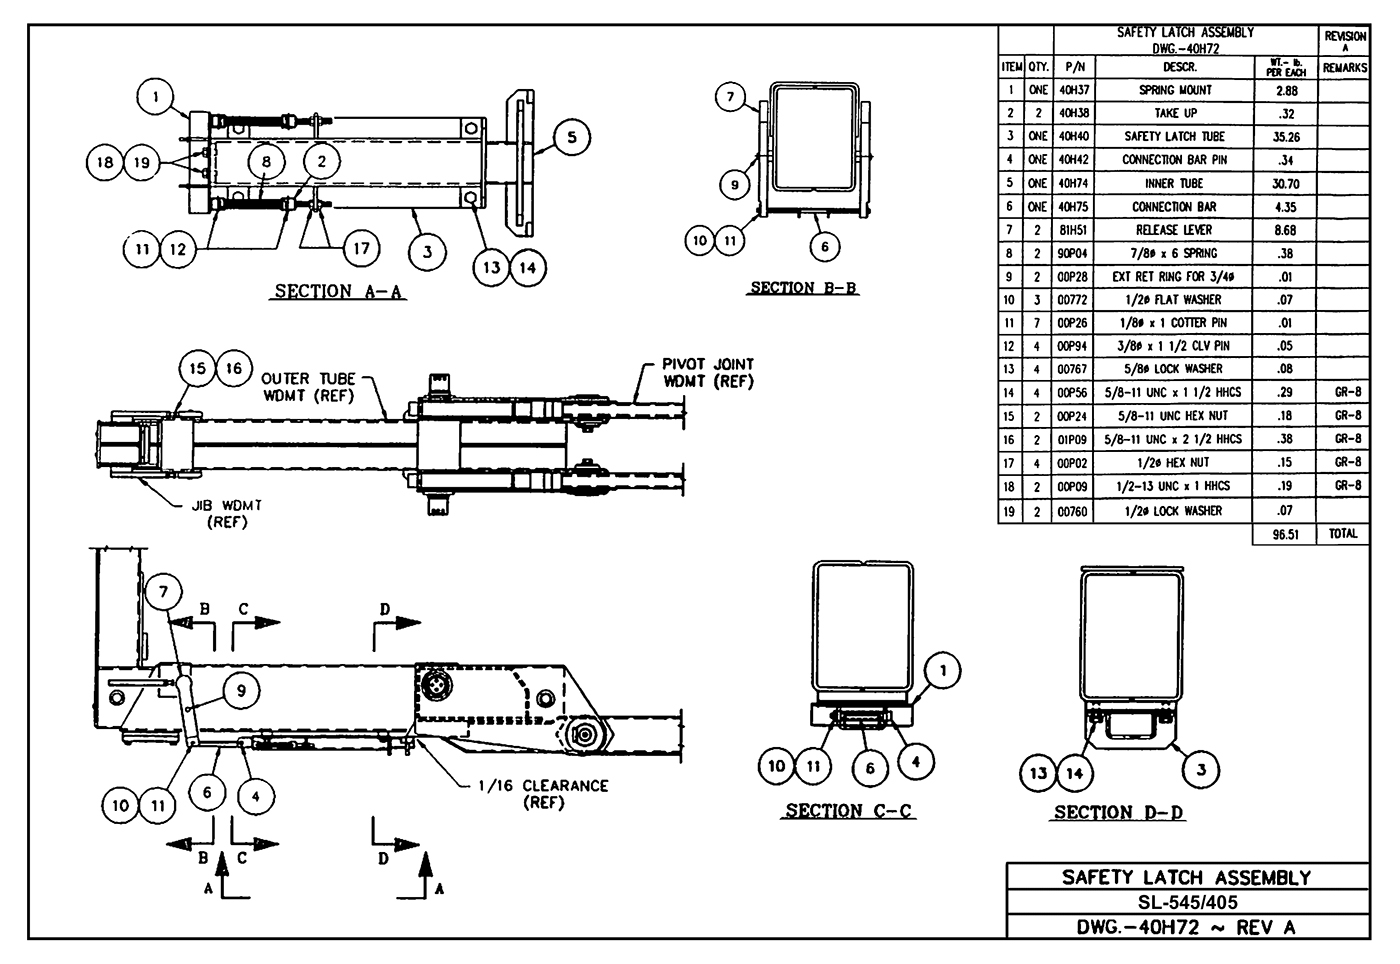 Sl-545/405 Safety Latch Assembly Diagram